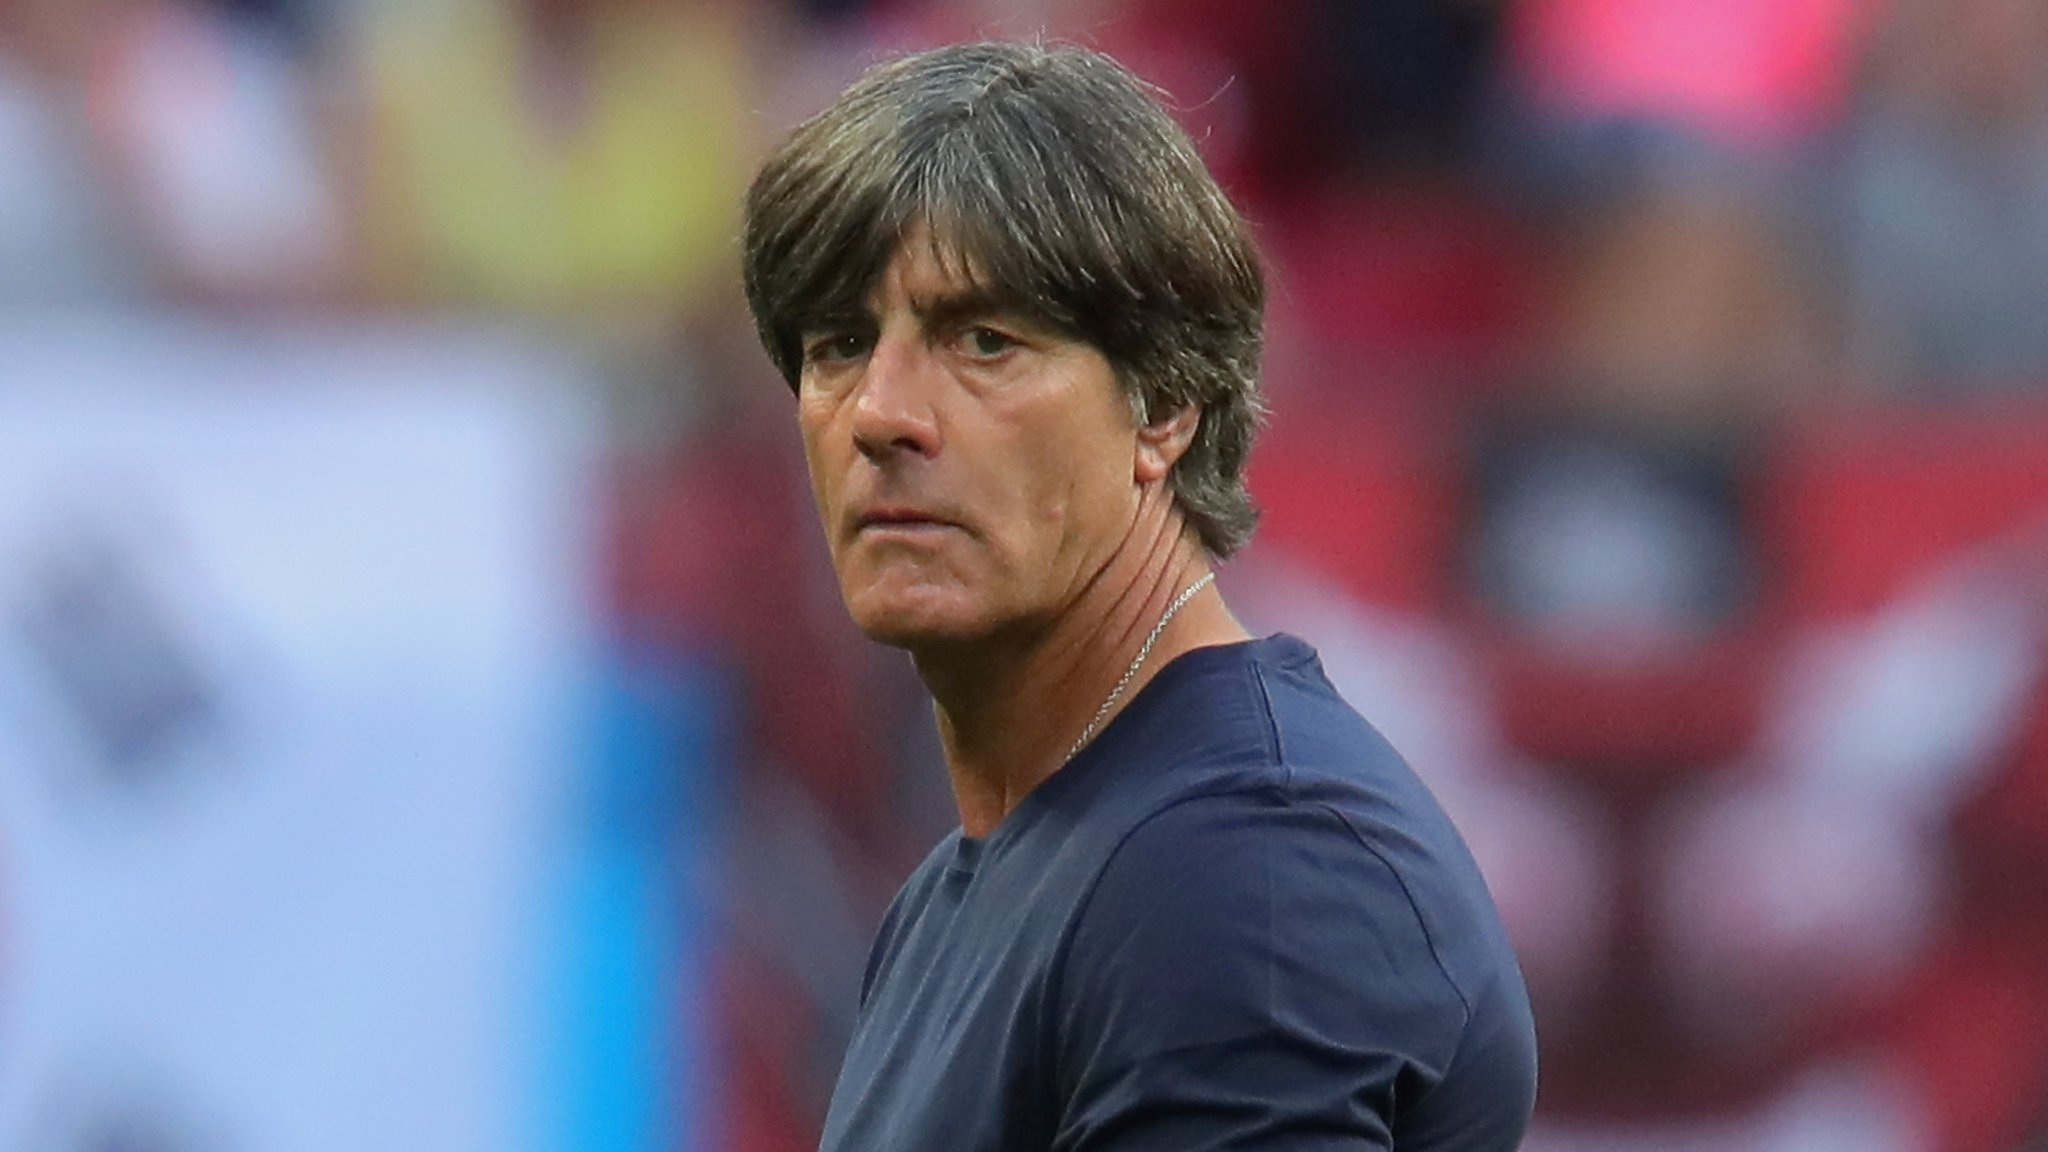 World Cup 2018: Joachim Low will remain Germany manager despite shock exit